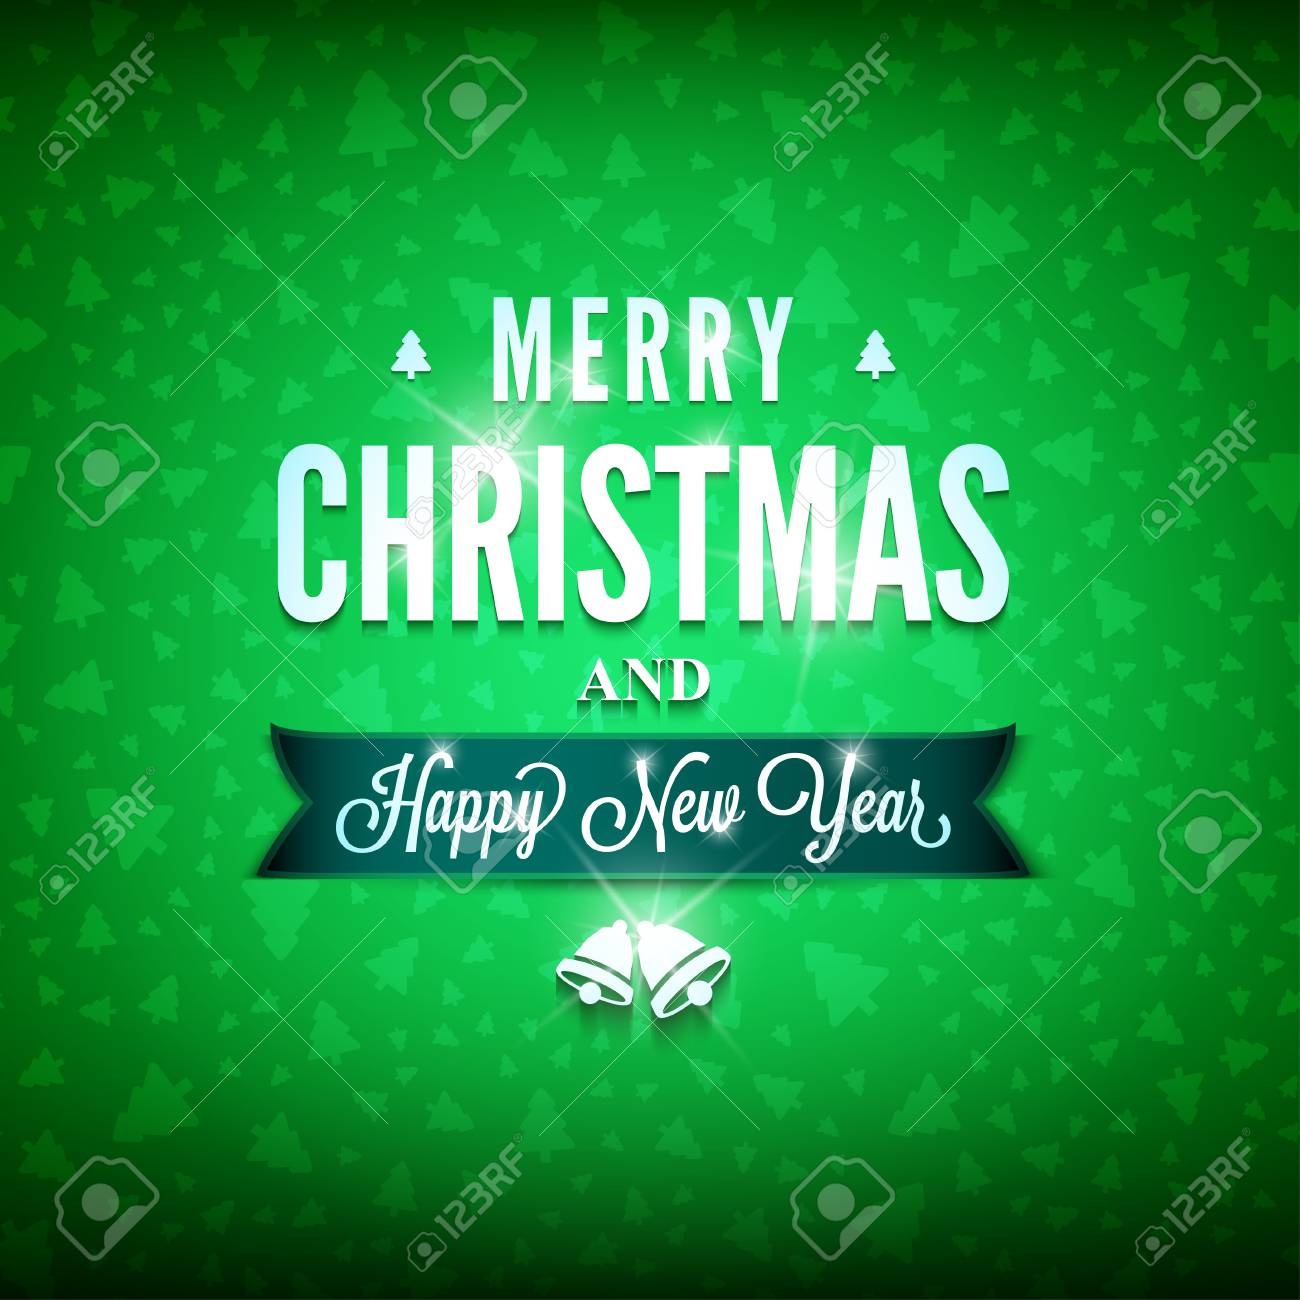 merry christmas and happy new year message on the green background christmas related ornaments objects